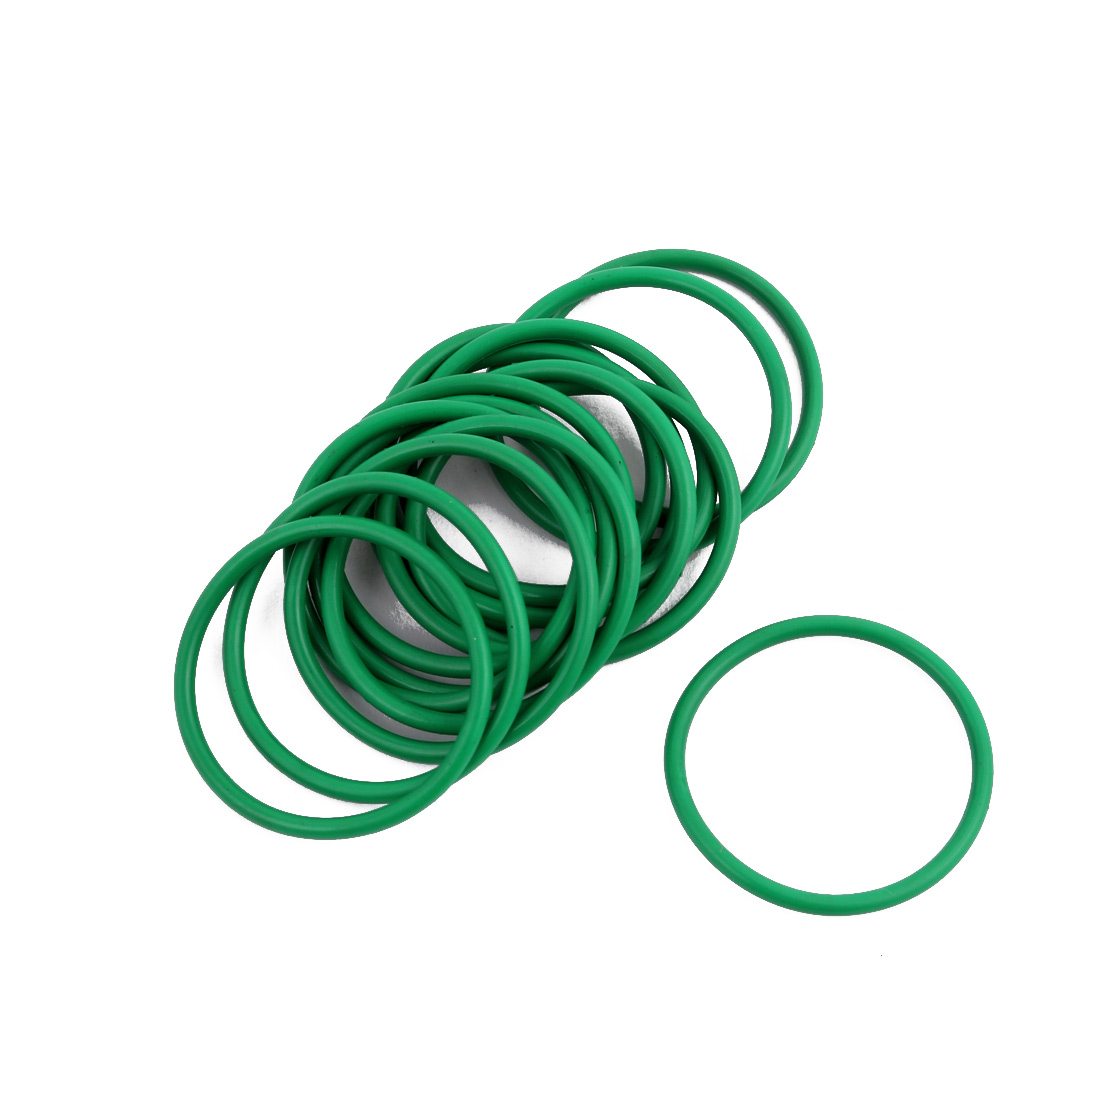 15Pcs Green 30 x 1.9mm Industrial Flexible Rubber O Ring Oil Sealing Grommets